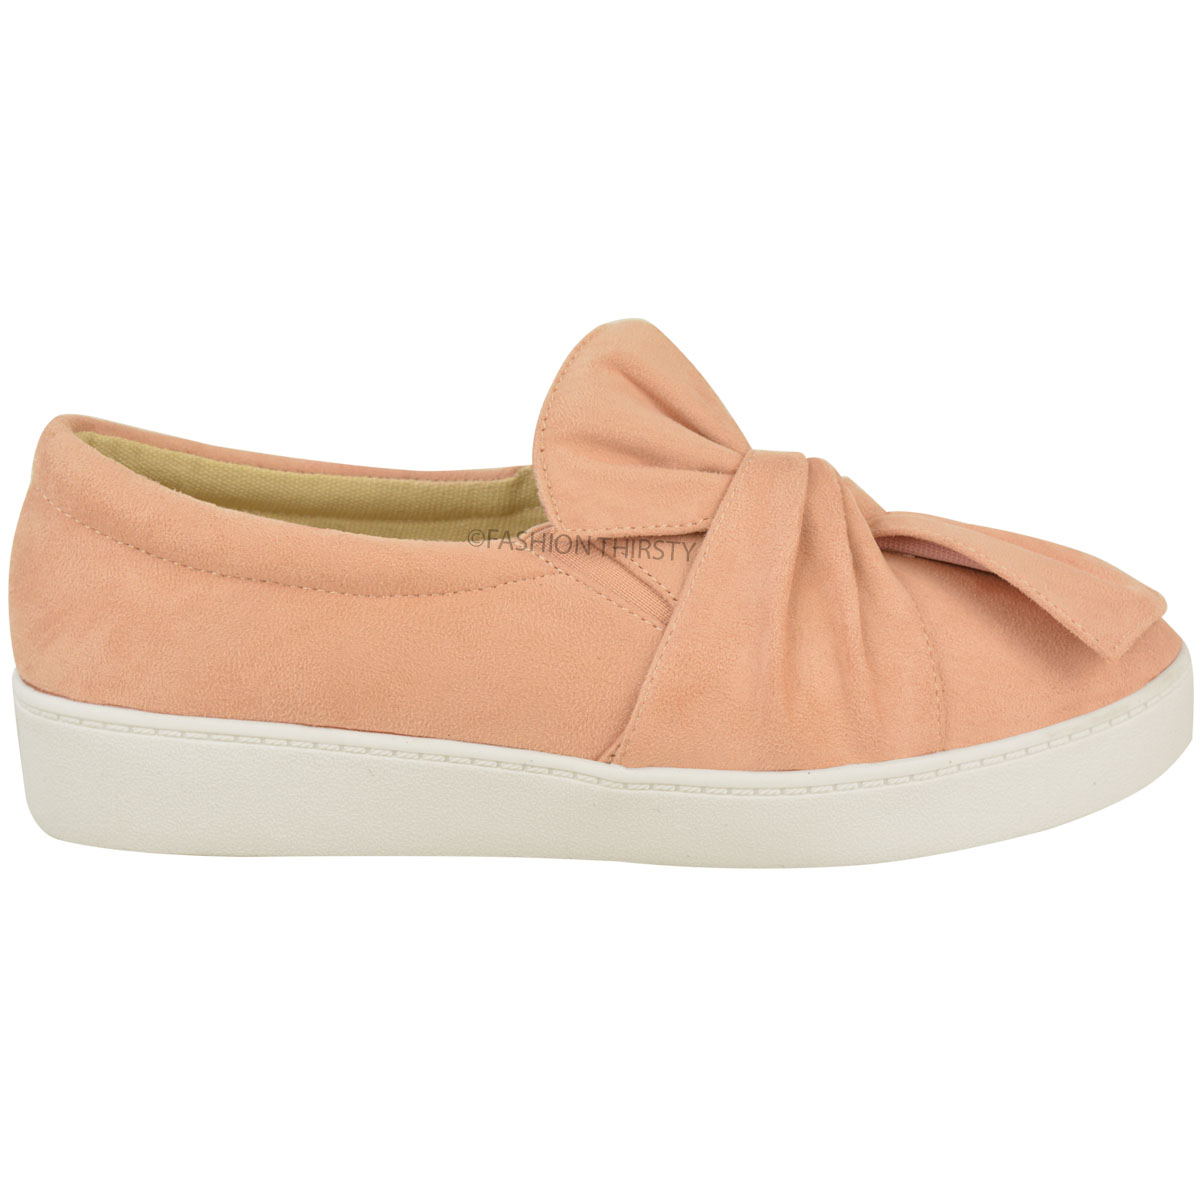 LADIES WOMENS BOW PUMPS TRAINERS SLIP ON SHOES SNEAKERS FLAT SHOES FAUX LEATHER